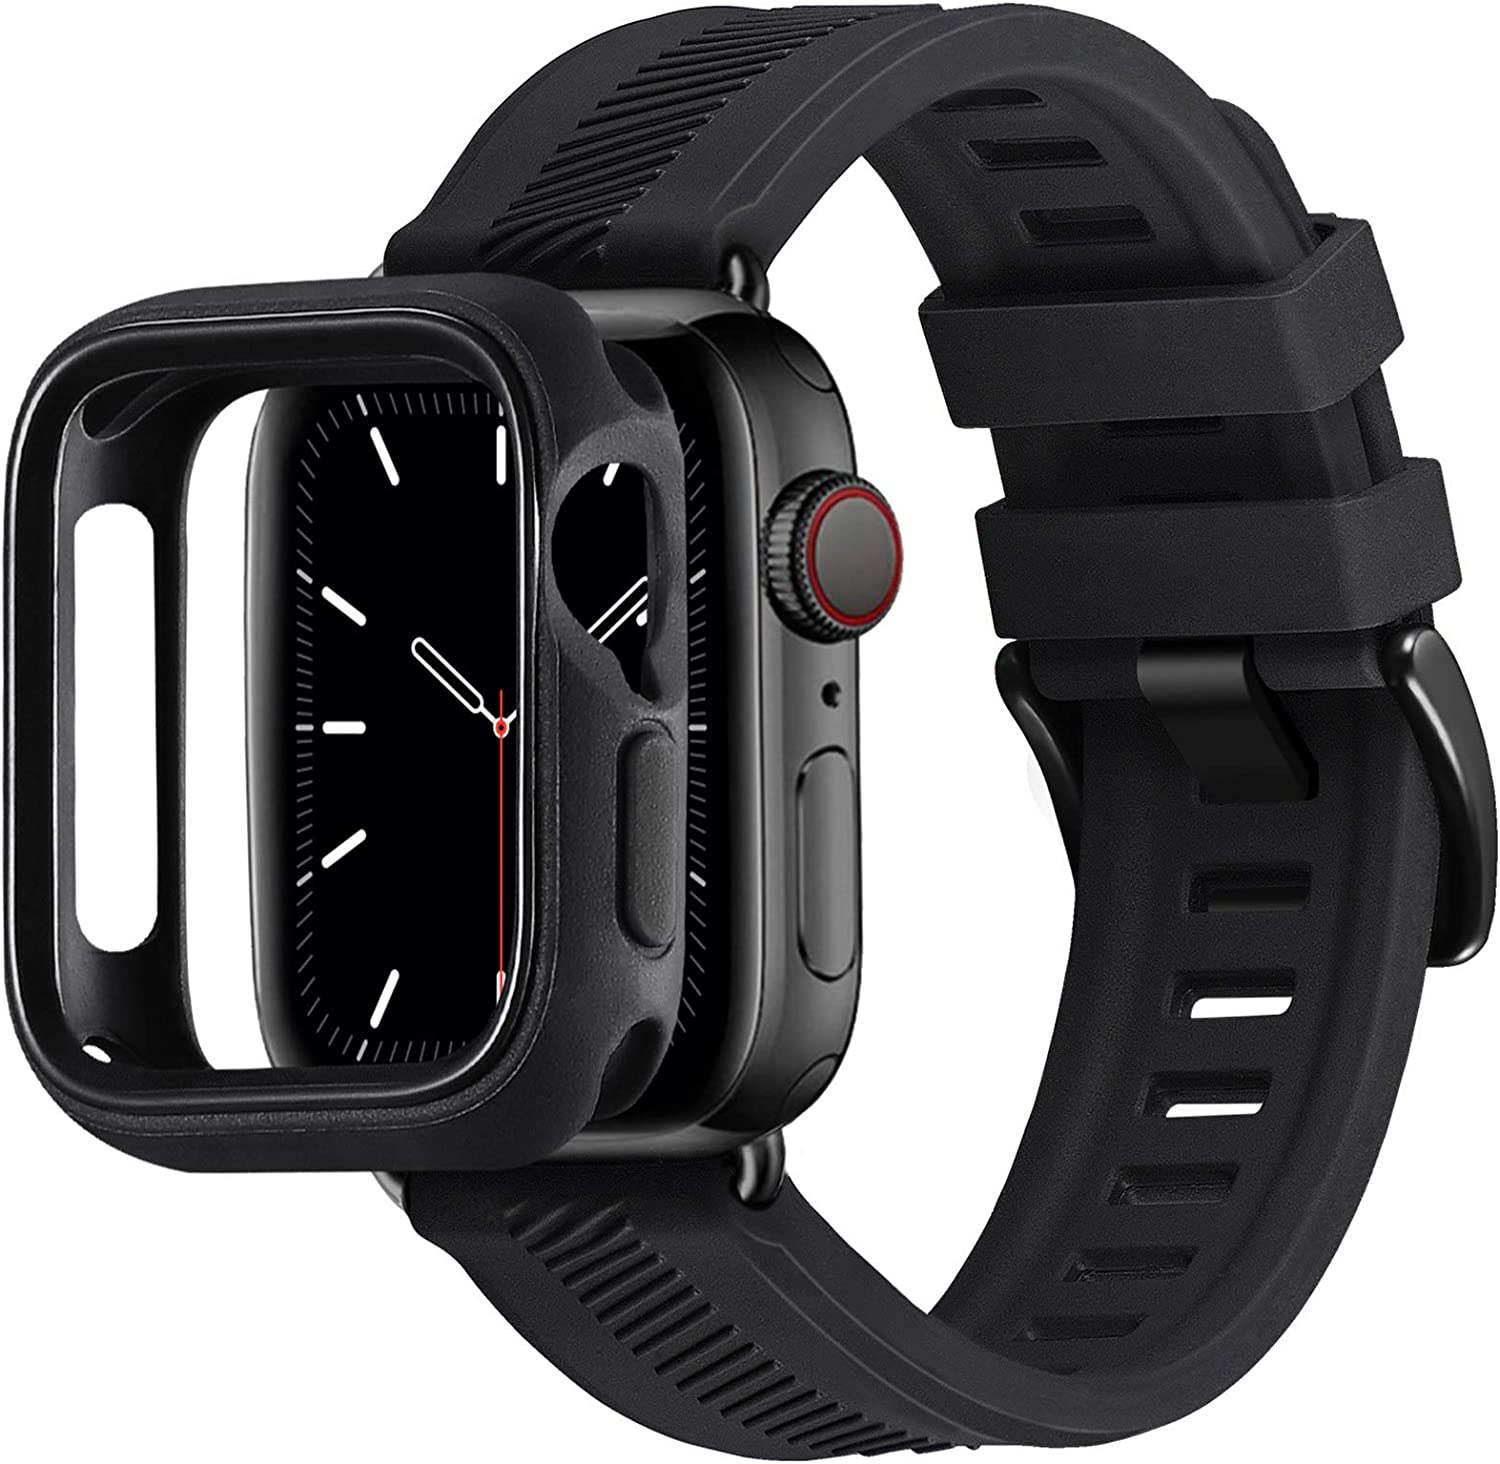 BesBand Compatible with Apple Watch Bands 44mm 42mm 40mm 38mm, Soft Silicone Waterproof Sport Band Loop with Protective Case for iWatch Series 6/5/4/3/2/1&SE (Black/Black, 38mm/40mm)